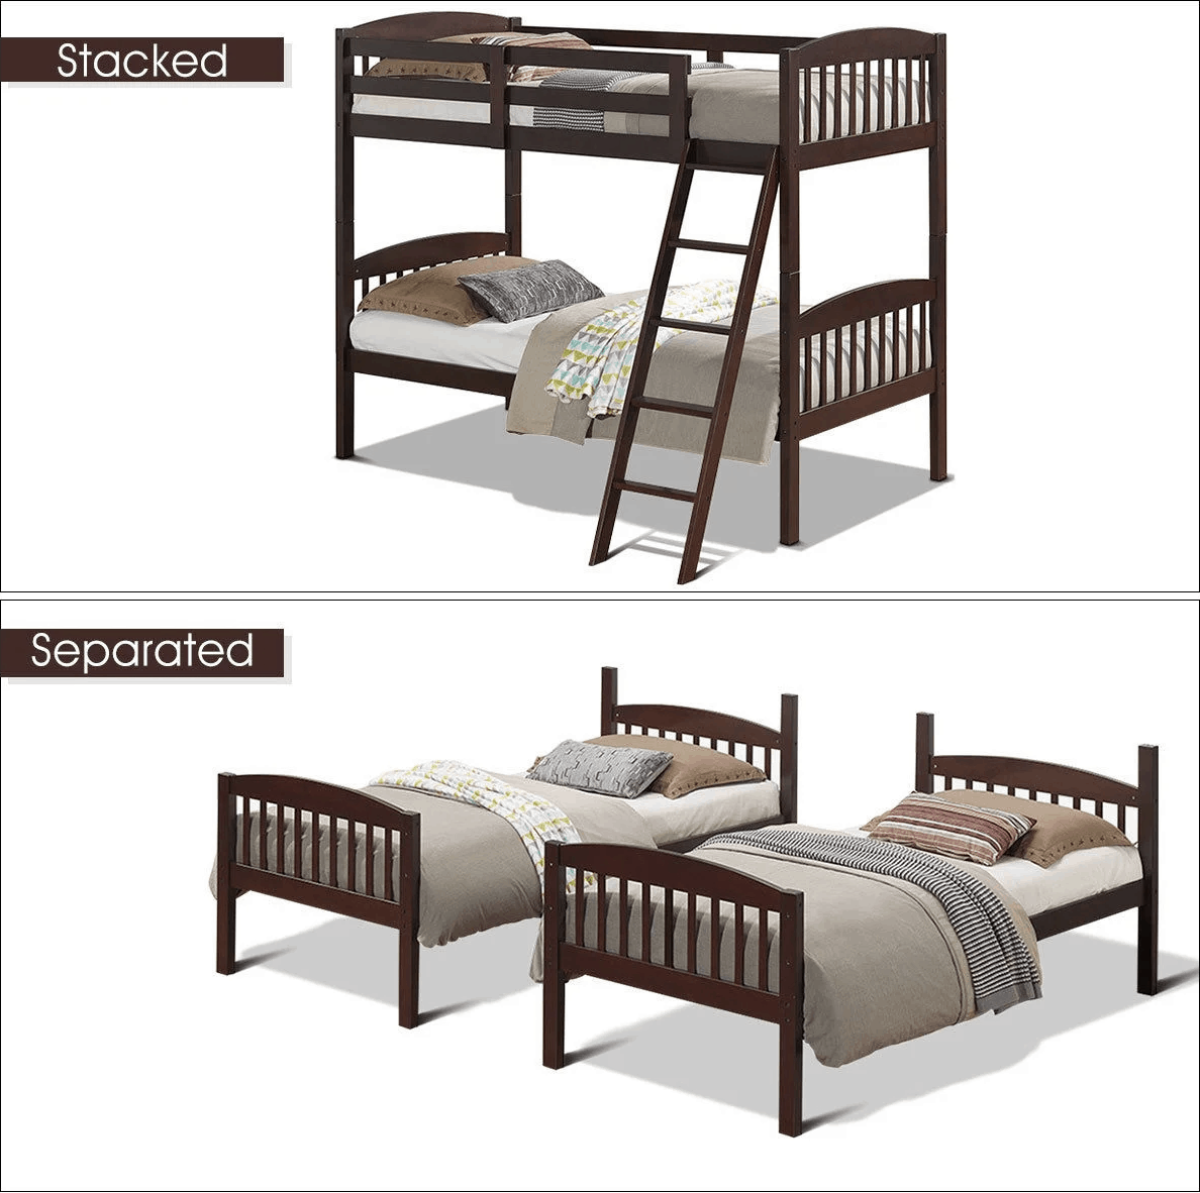 How To Separate Bunk Beds Or Turn Bunks Into Loft Beds